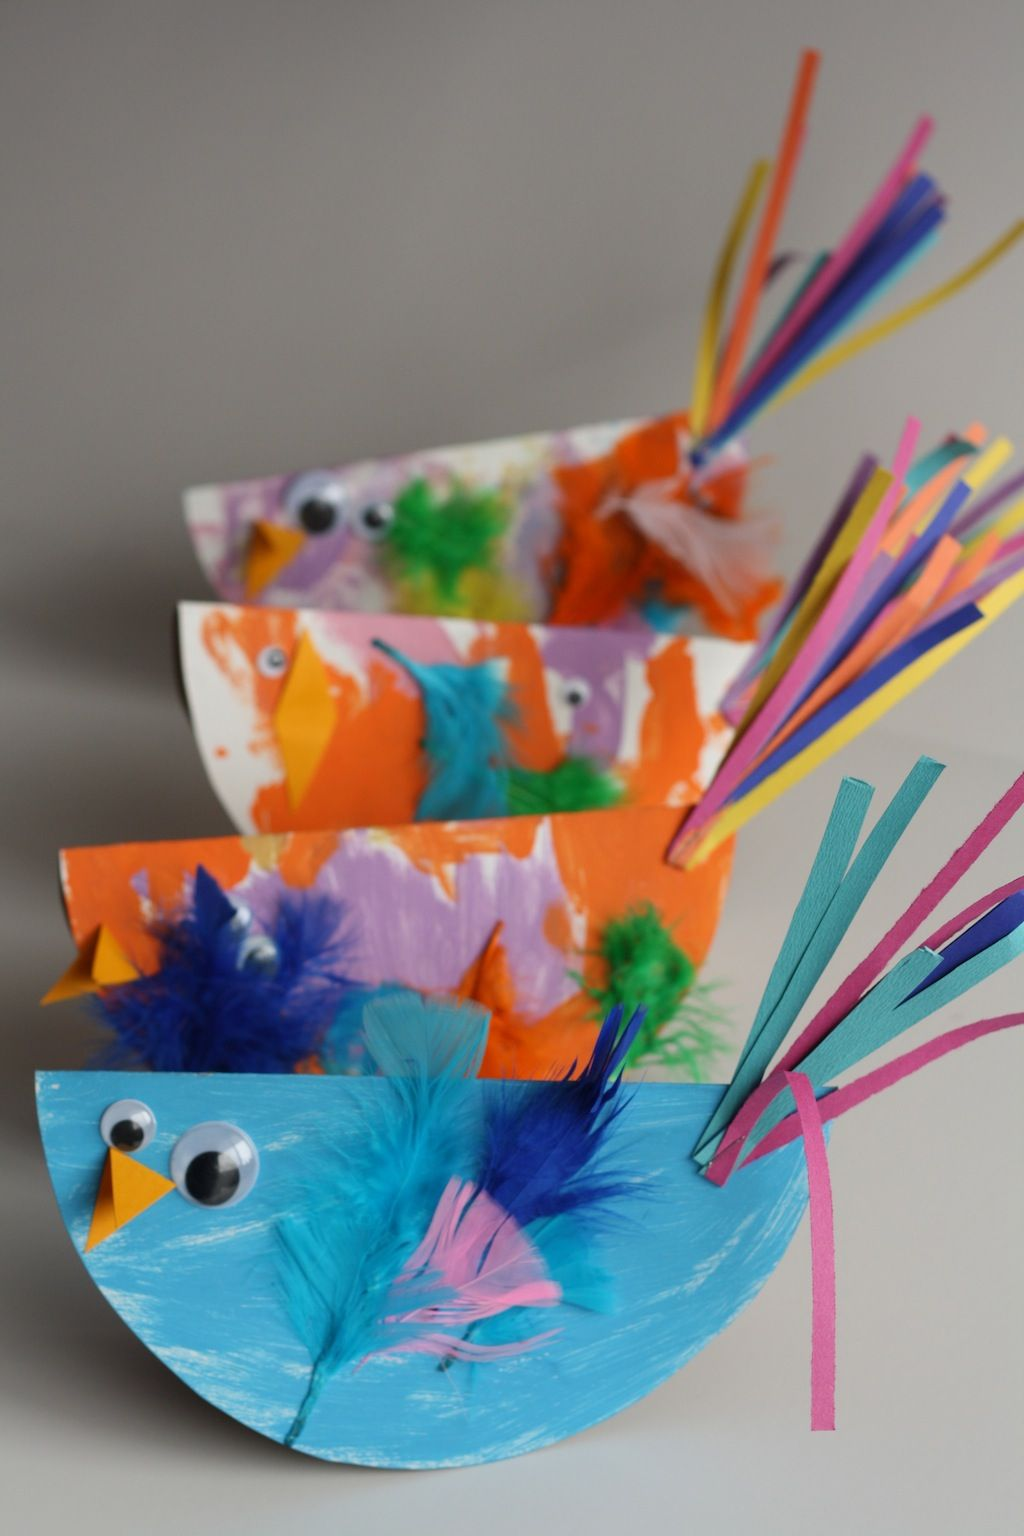 Paper Plate Bird Craft For Kids Easy And So Cute Crafty